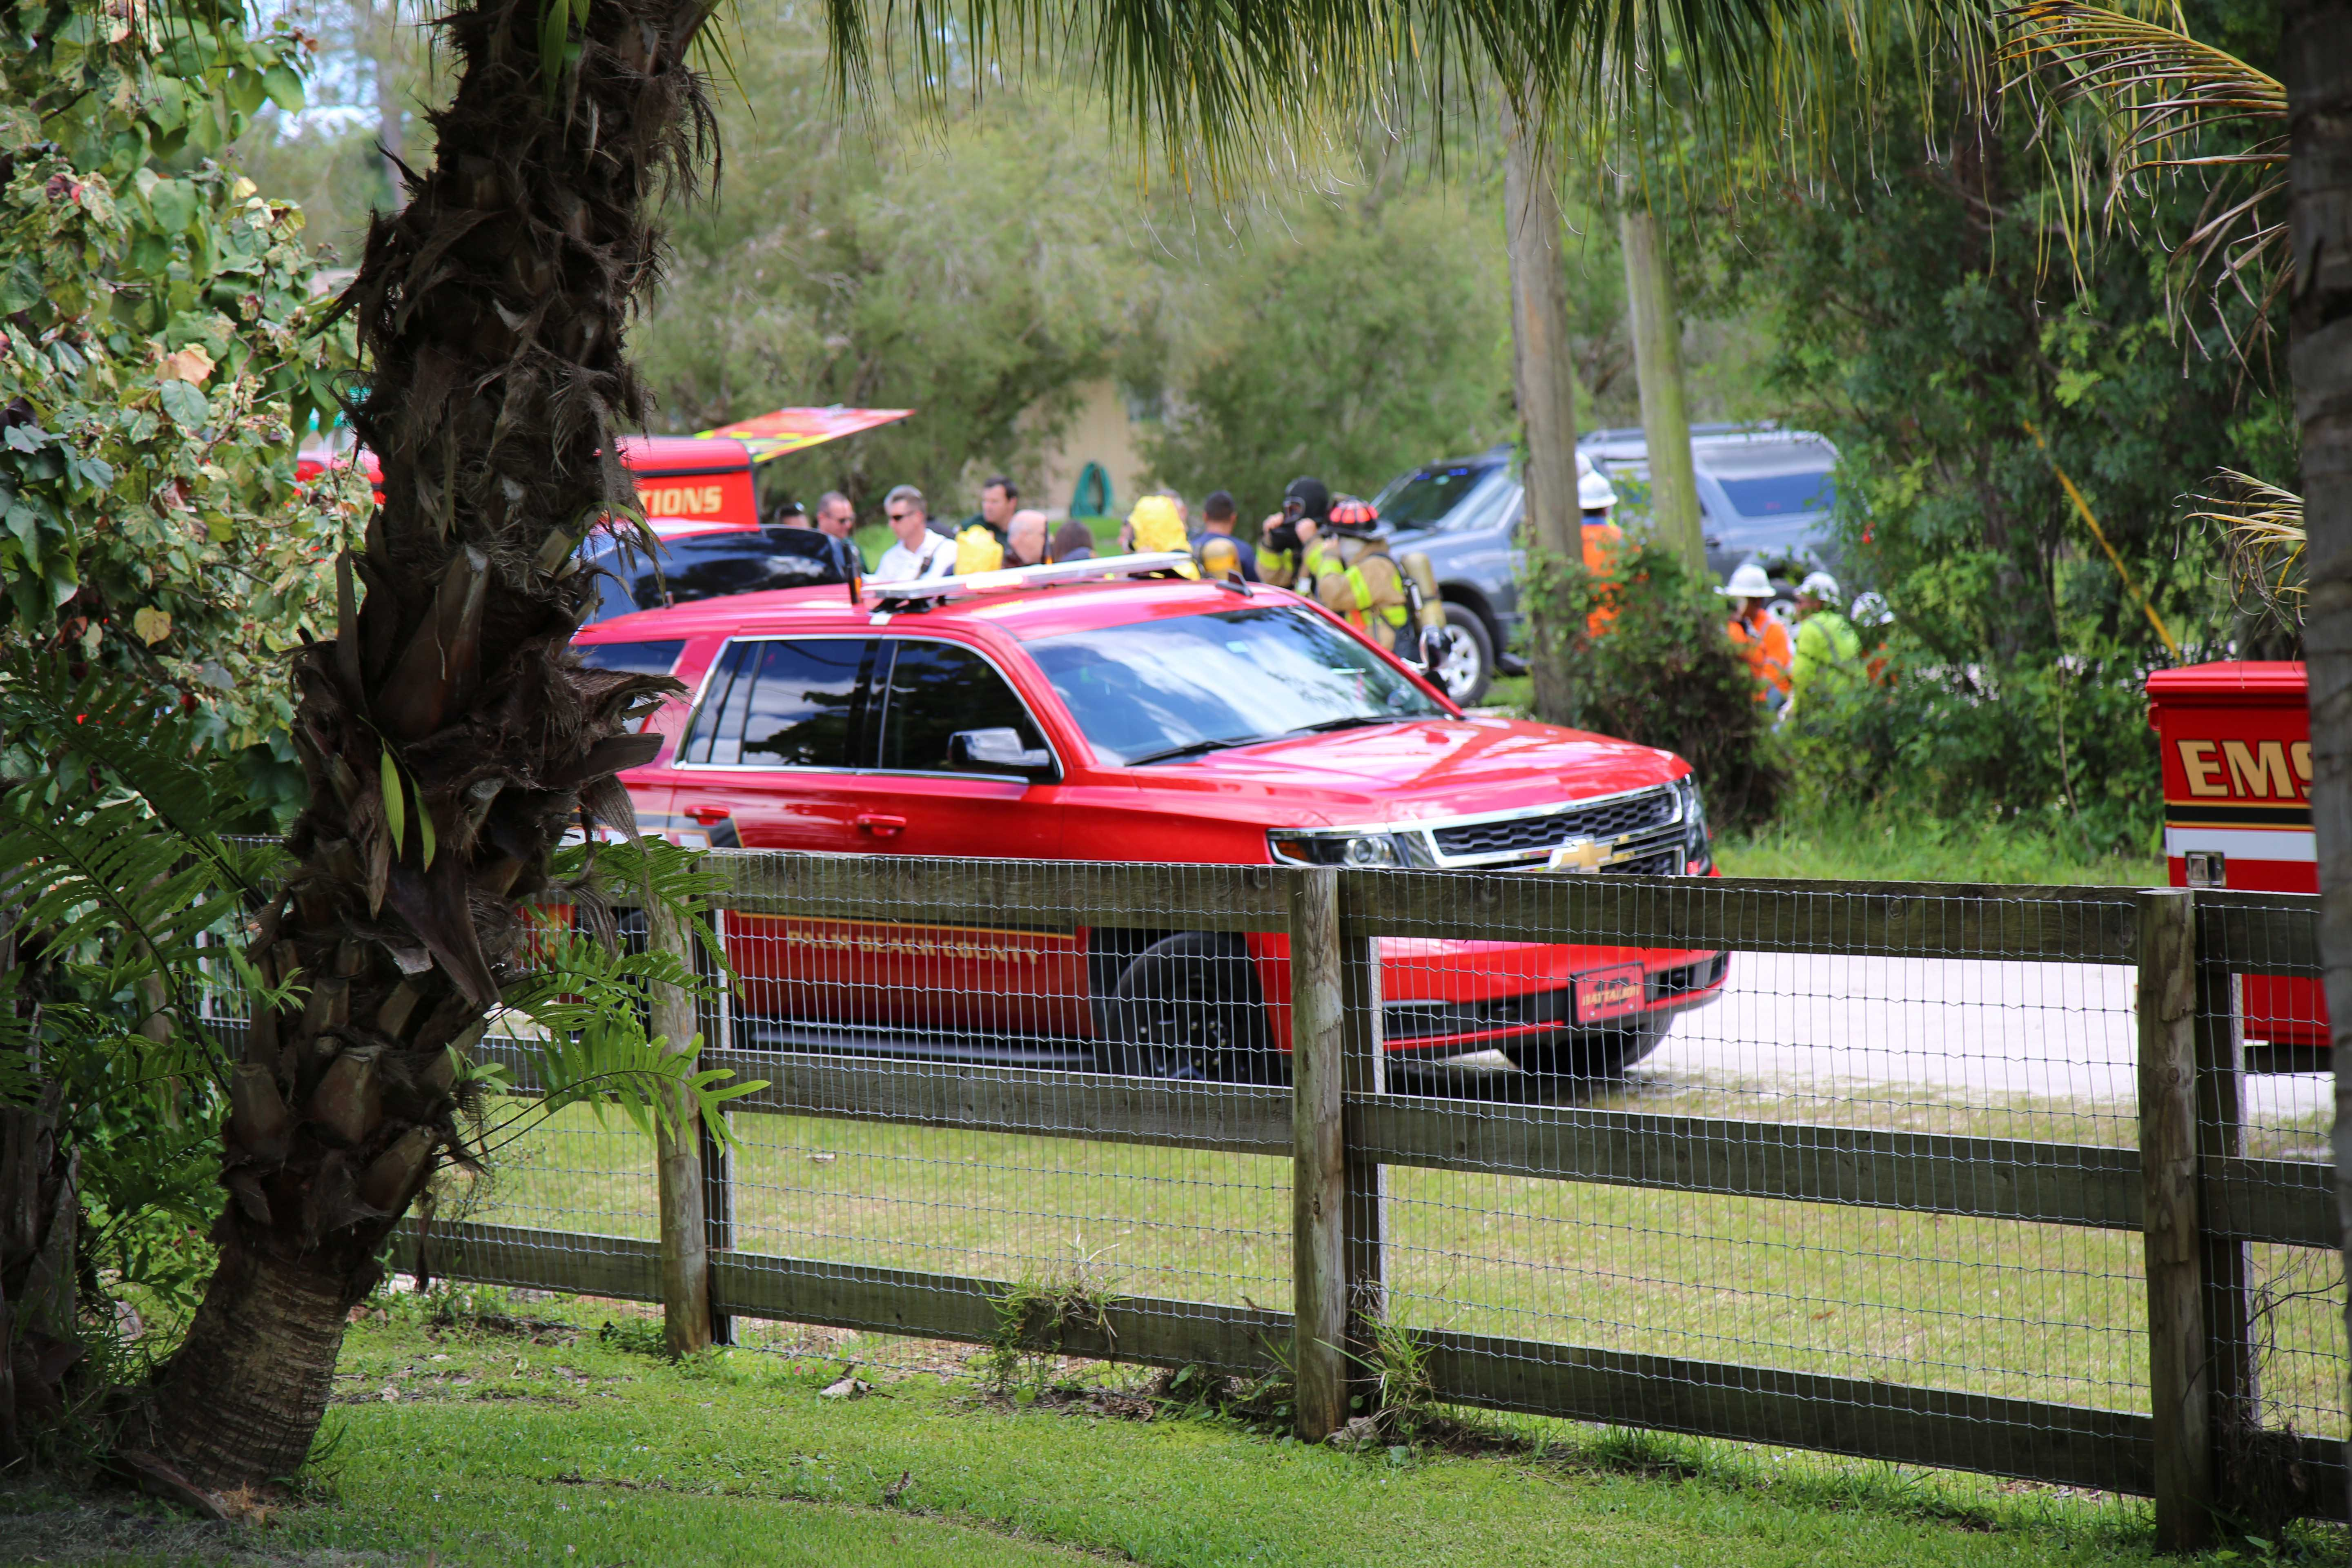 Chemical reaction causes alarm in Jupiter Farms